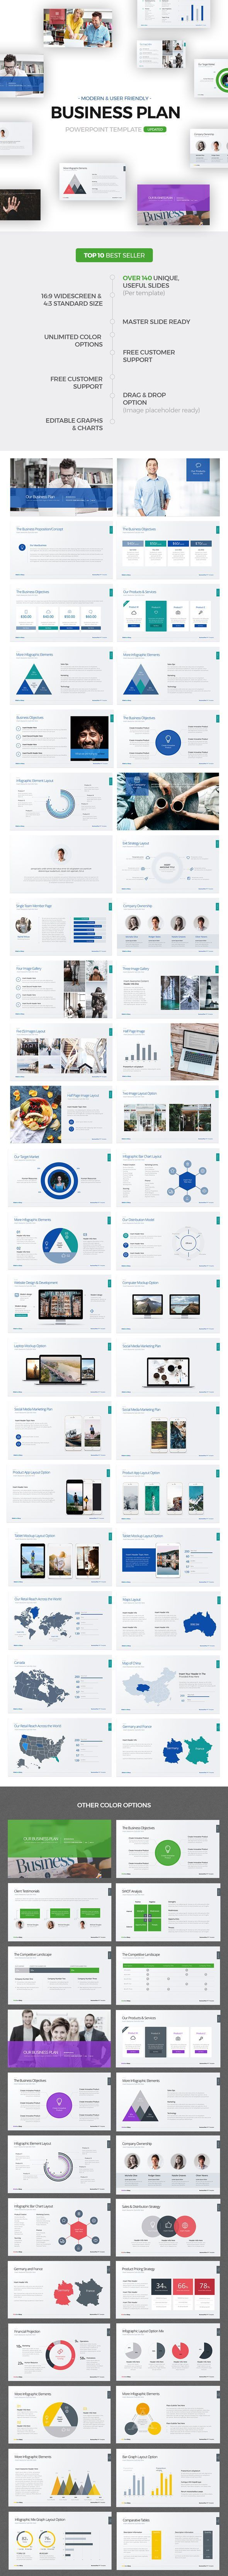 Get a modern Powerpoint Presentation that is beautifully designed and functional. This slides comes with infographic elements, charts graphs and icons.  This presentation template is so versatile that it can be used in many different businesses. This powerpoint can be used for real estate market review, new business funding request, product review, marketing and promotions post launch review, market research, social media impact studies, education and training.